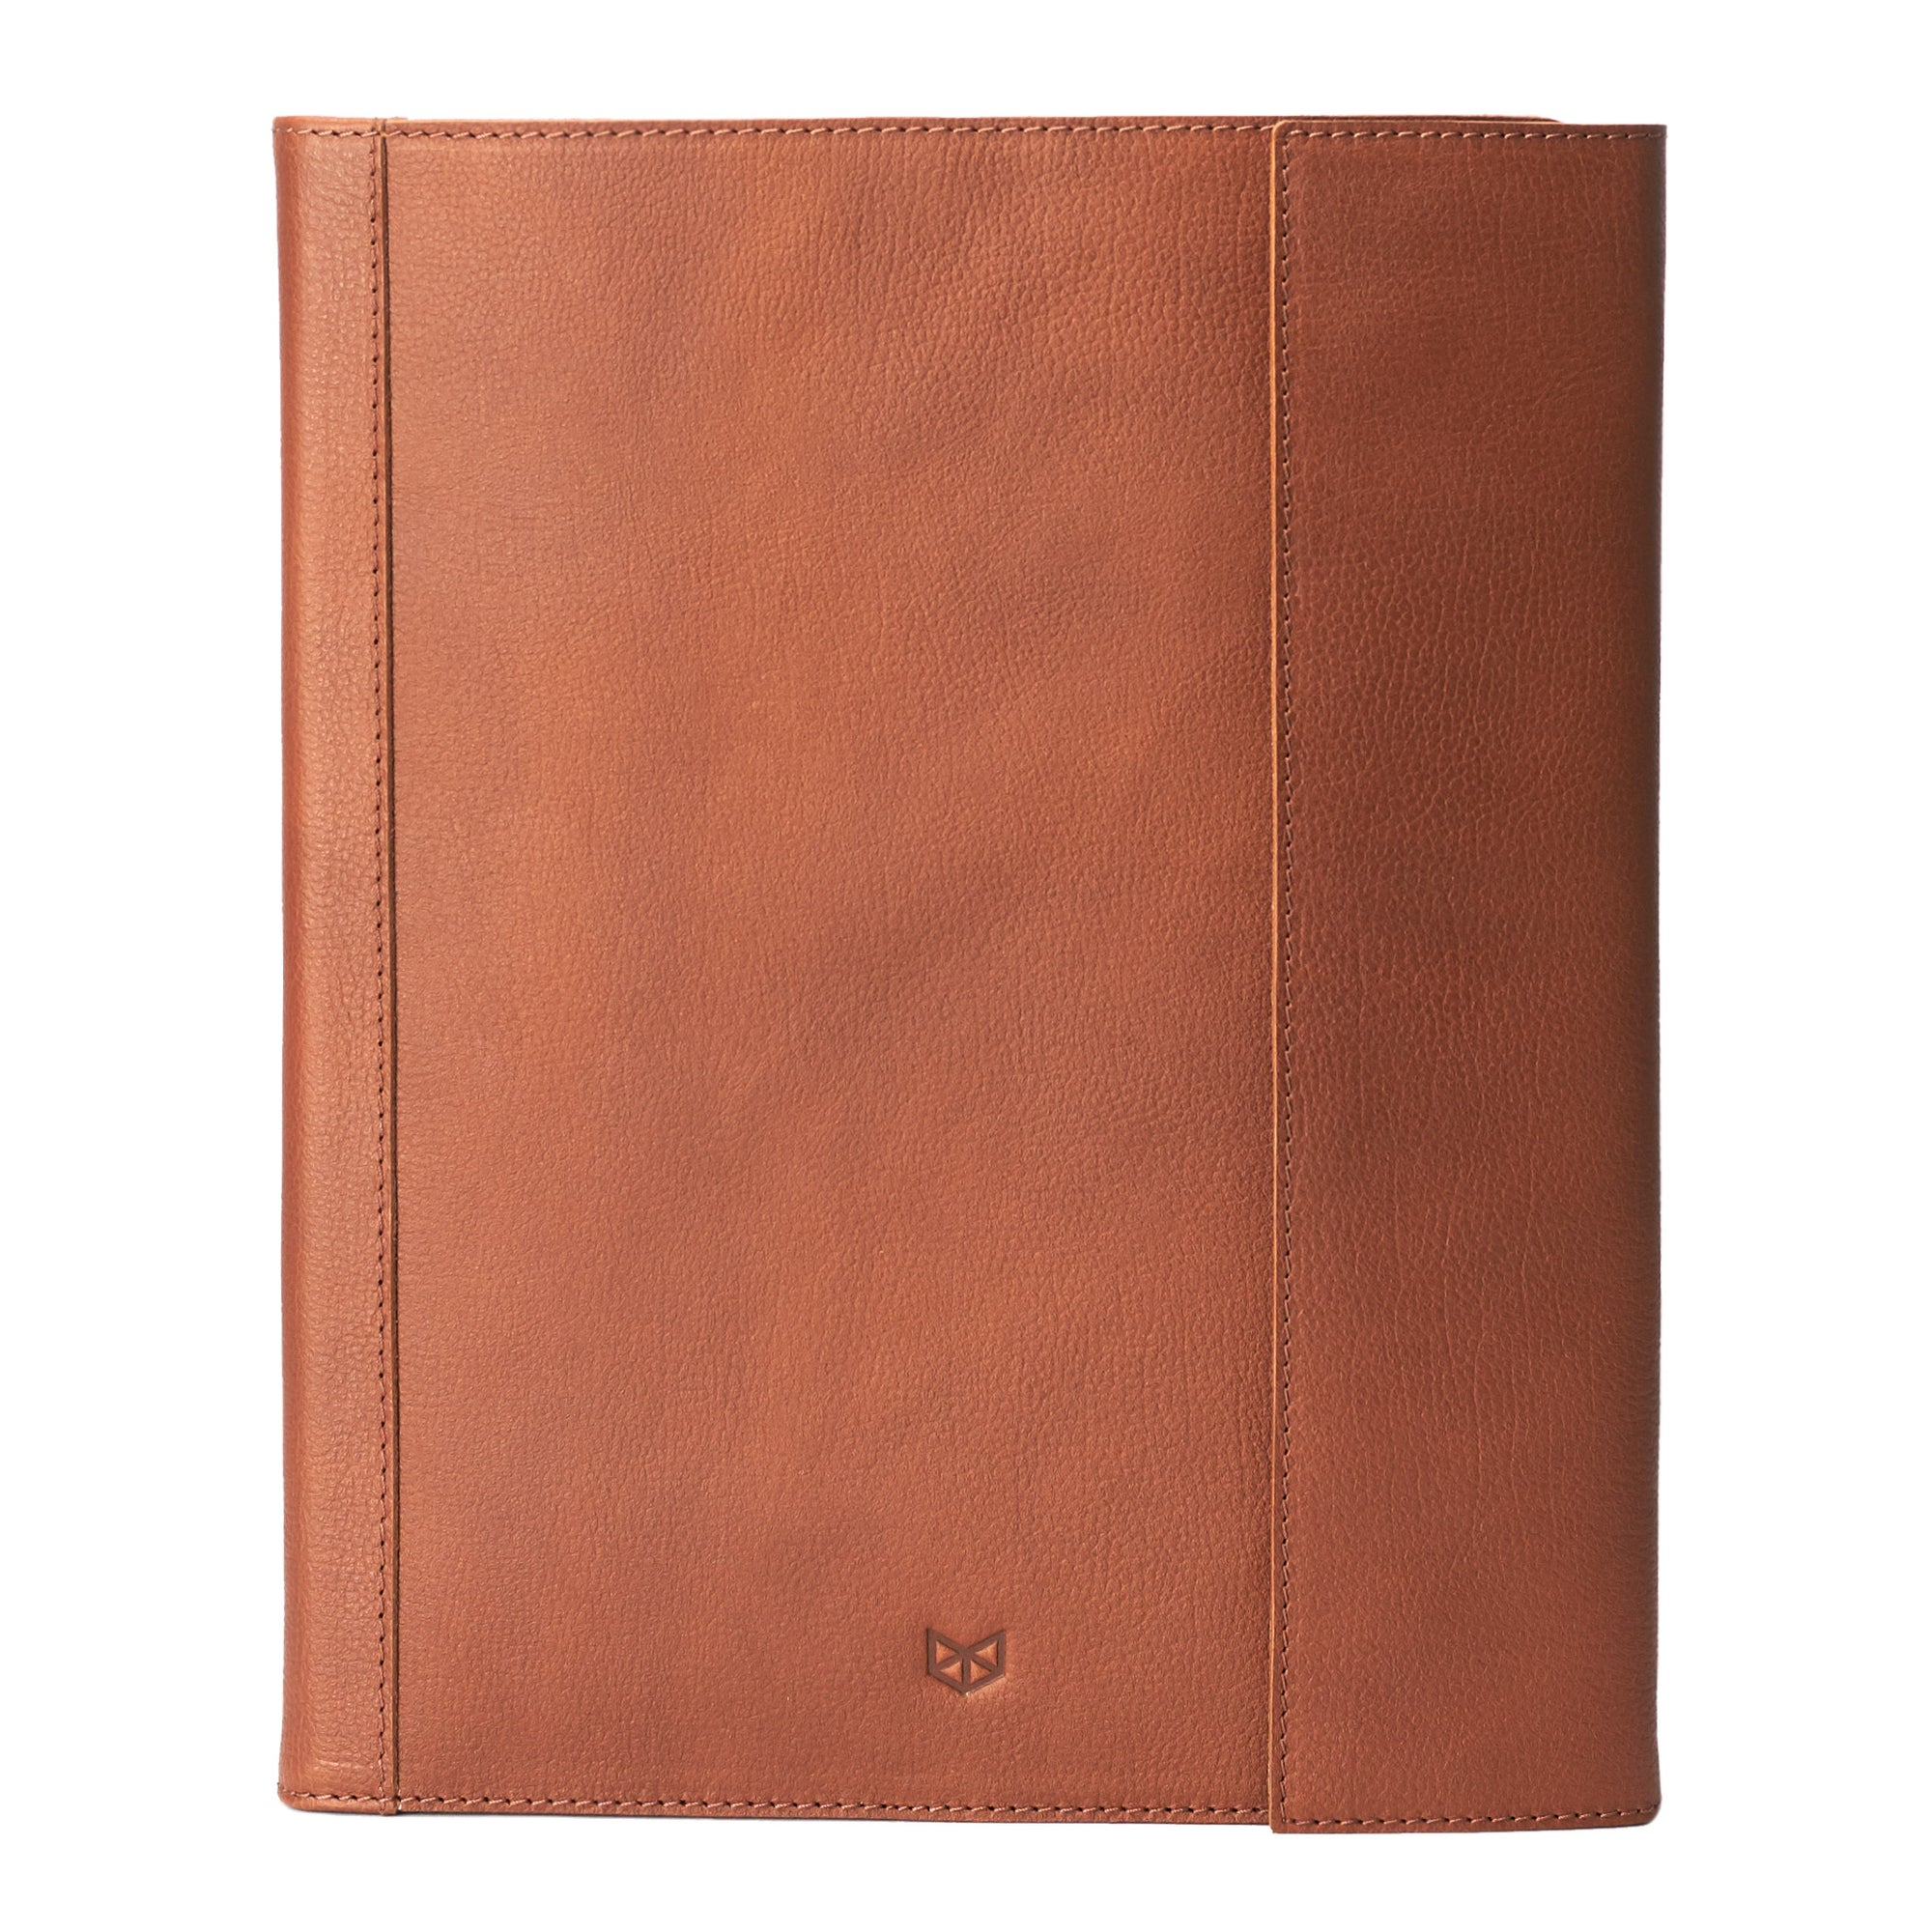 Portfolio front view. Tan laptop tablet portfolio. Business document organizer for men.